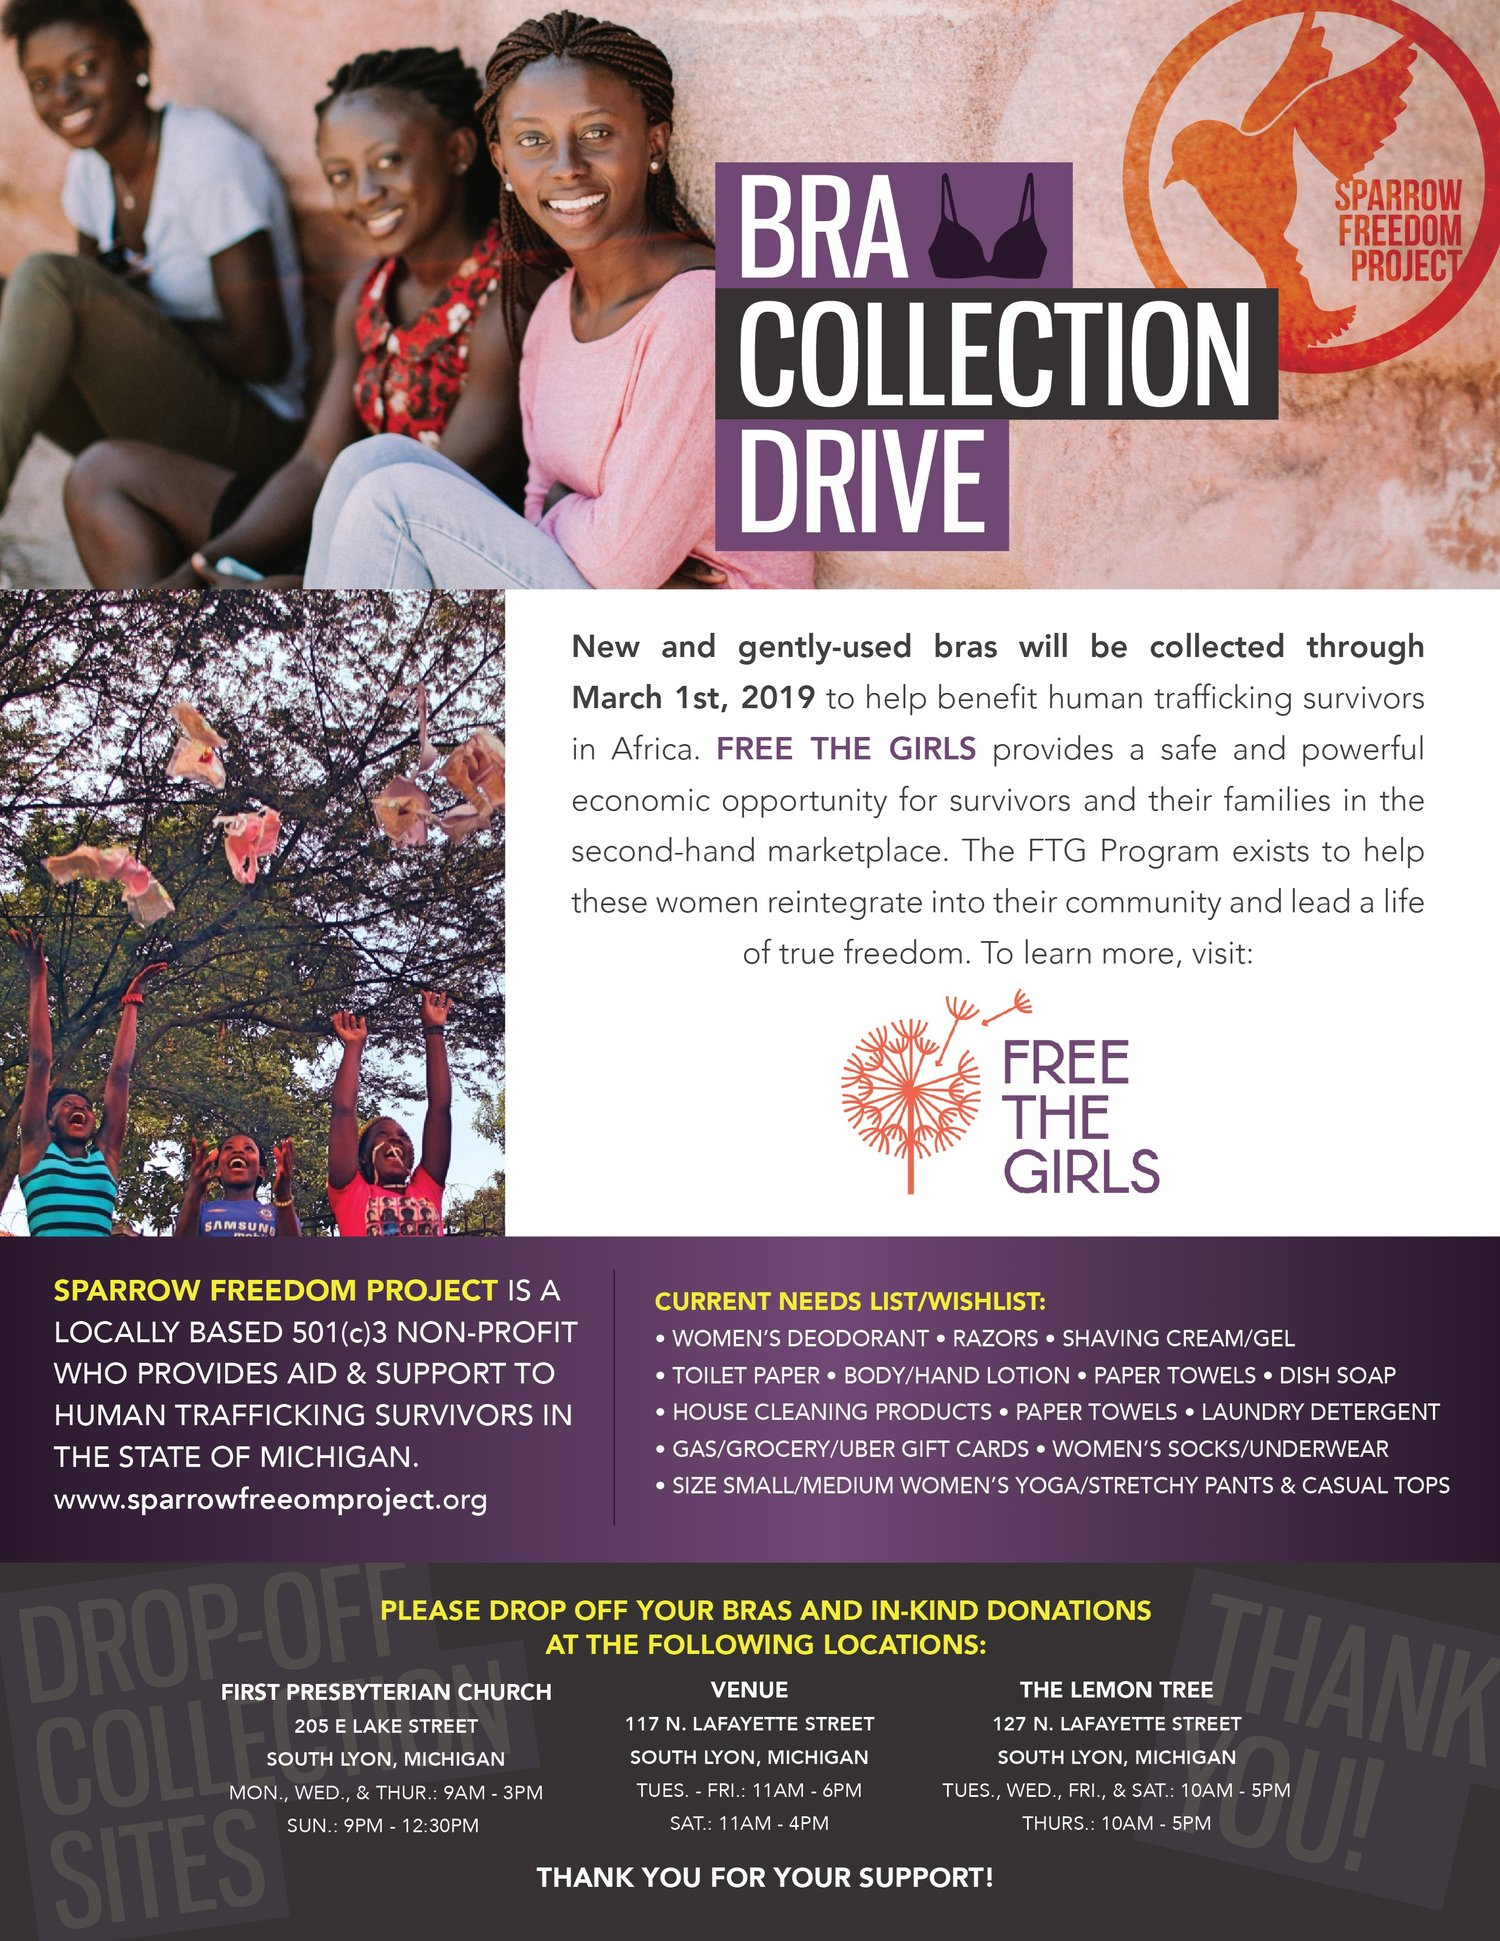 Help support The Sparrow Freedom Project/Save the girls with